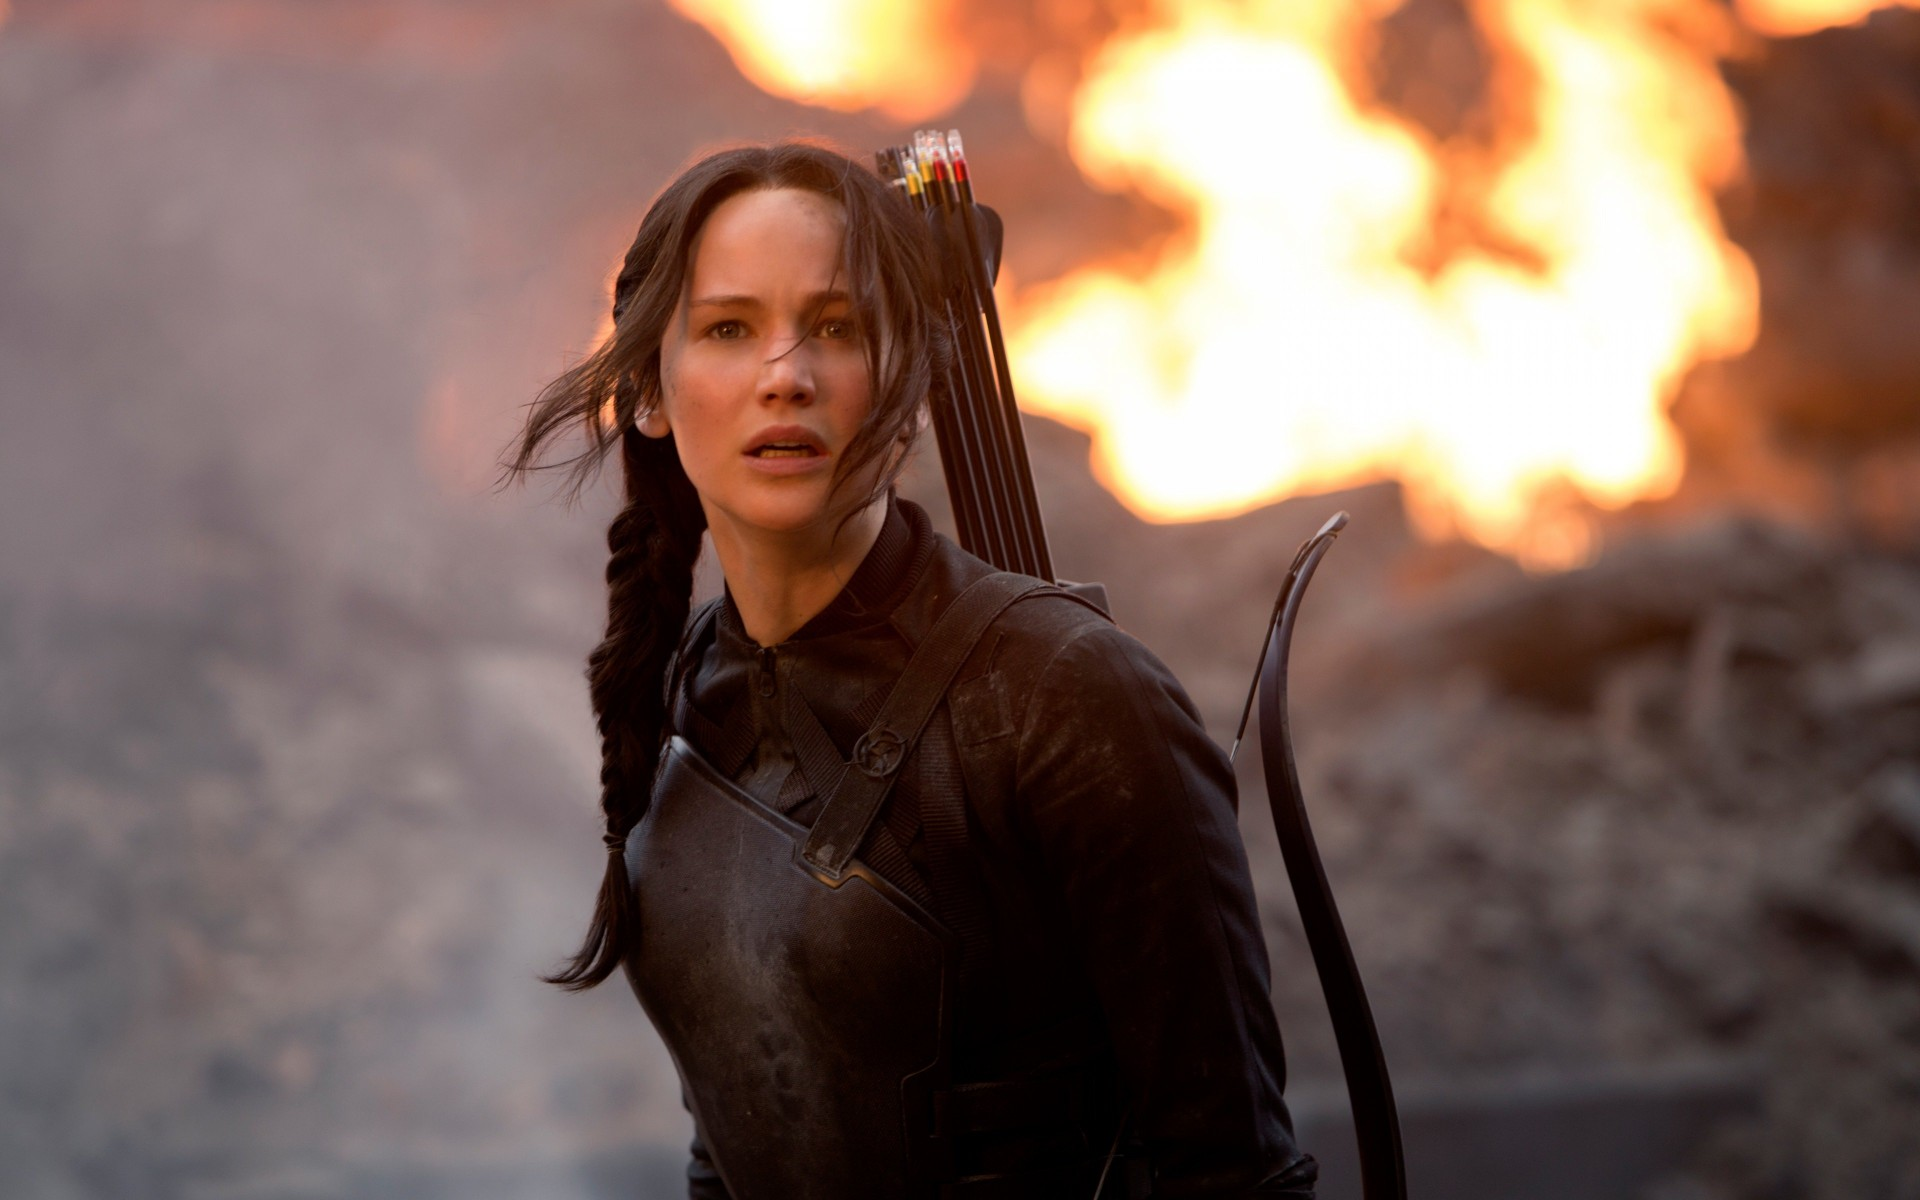 Jennifer Lawrence in The Hunger Games Wallpaper for Desktop 1920x1200